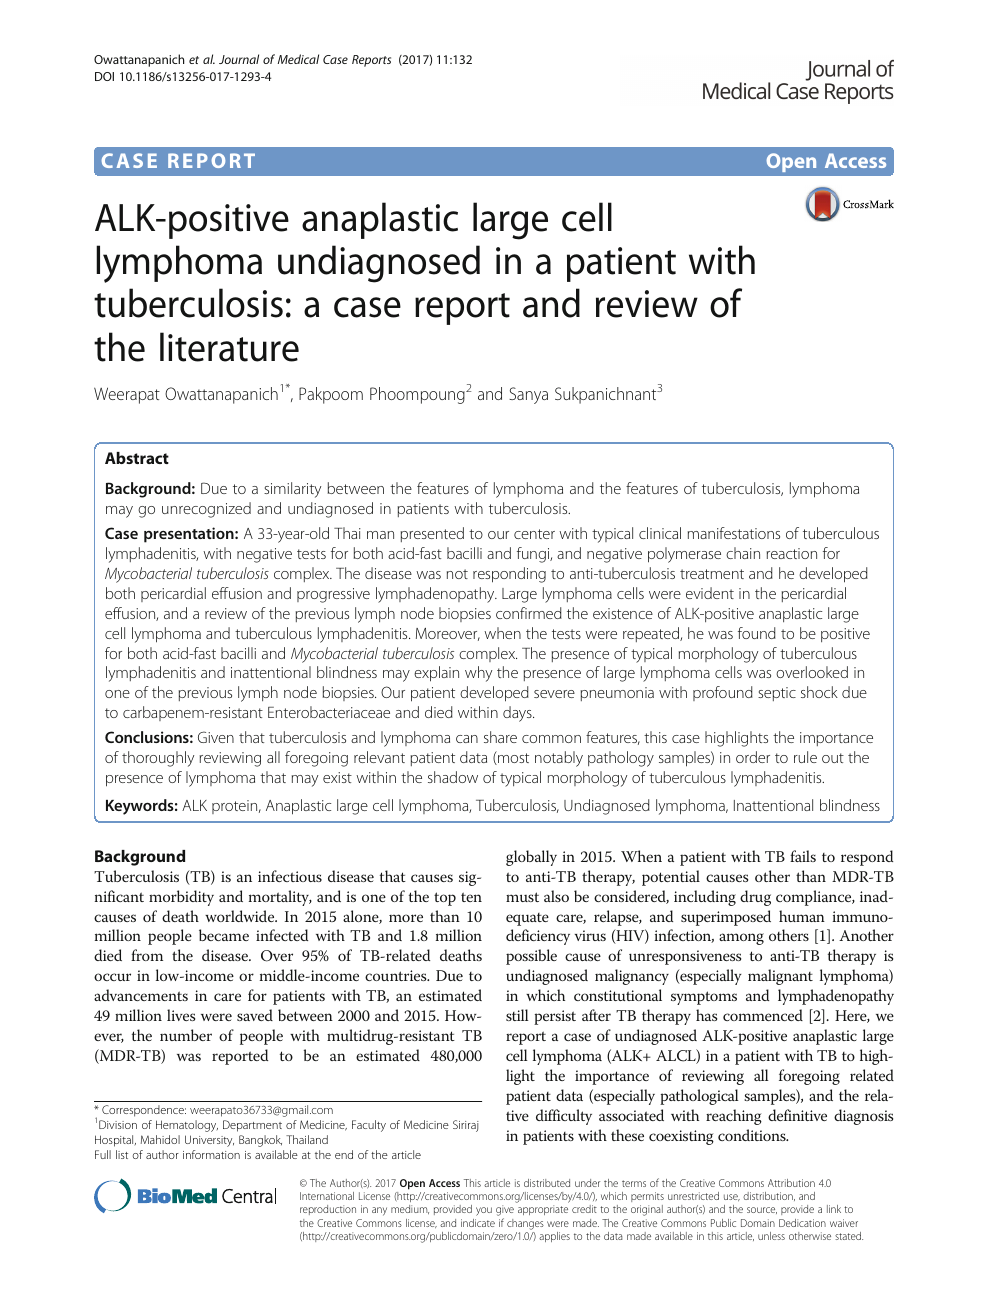 ALK-positive anaplastic large cell lymphoma undiagnosed in a